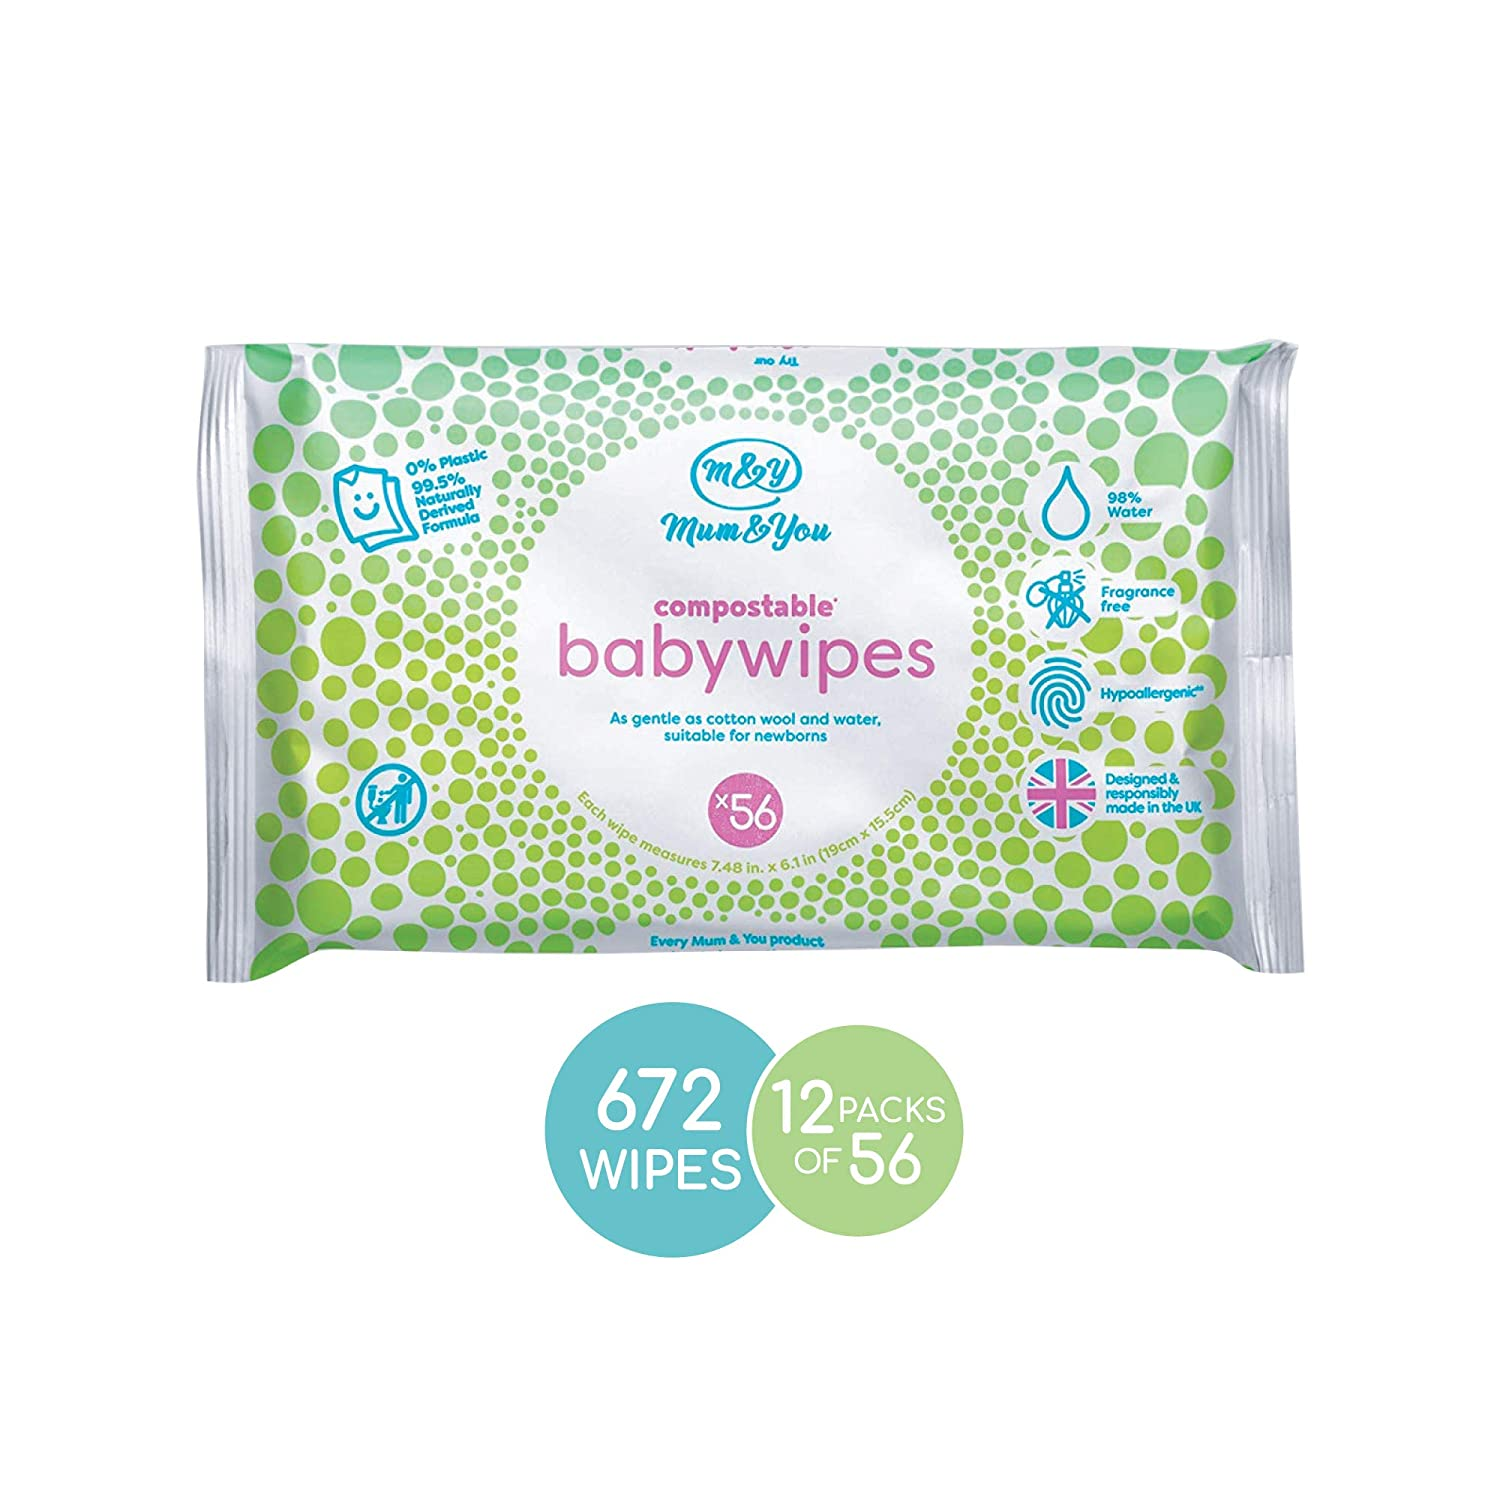 Mum & You Biodegradable and Compostable Plastic Free Baby Wet Wipes, 672 Count (12 Packs of 56) - 98% Water, 0% Plastic, Hypoallergenic & Dermatologically Tested